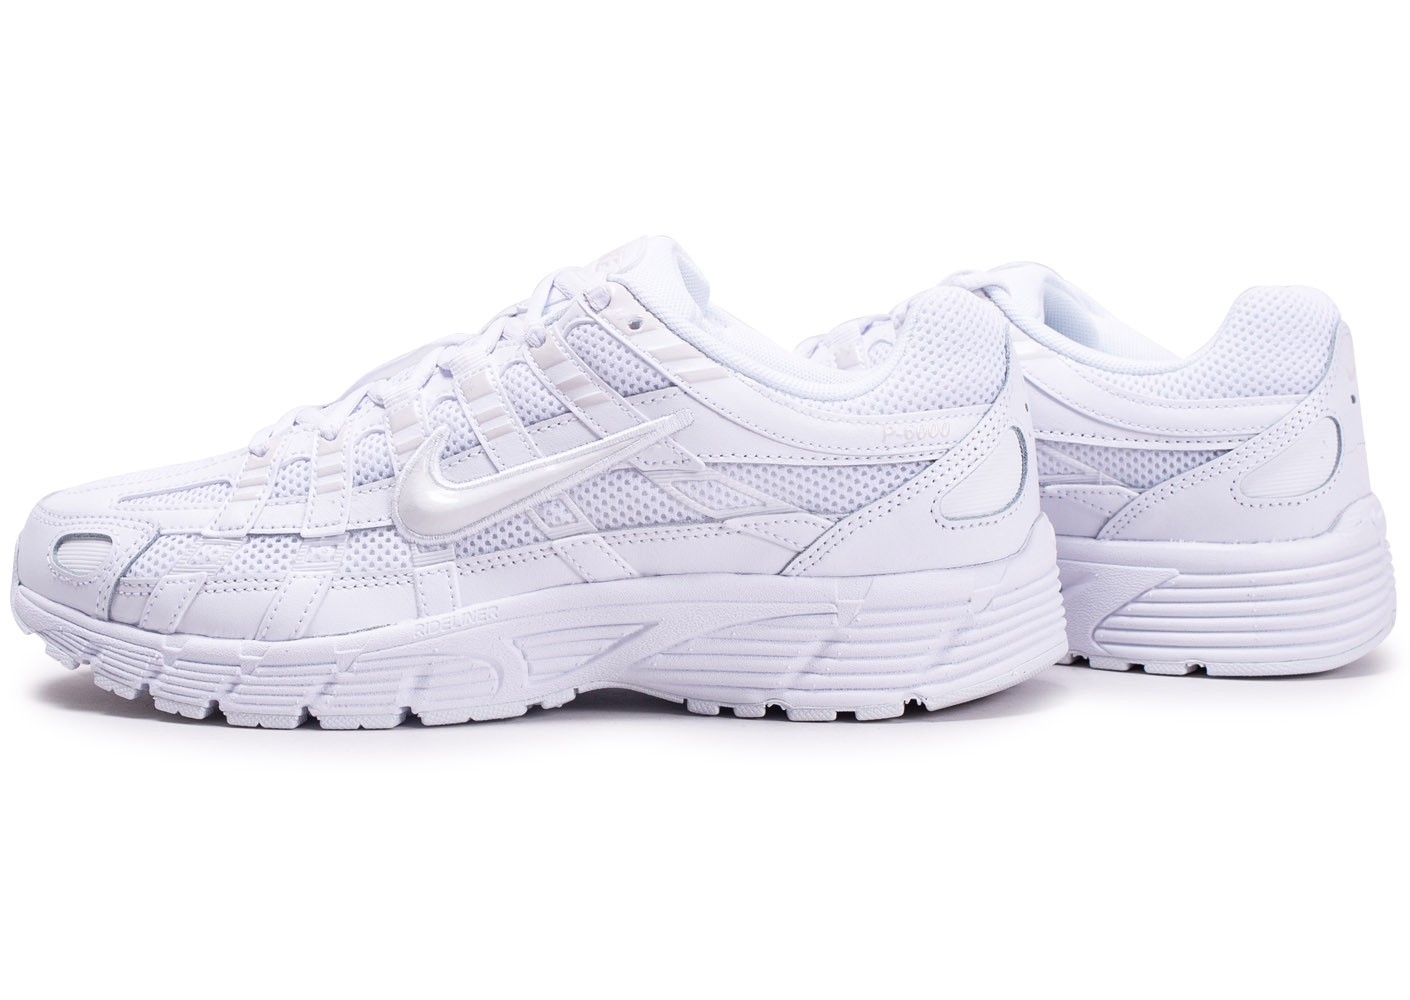 Nike P 6000 Blanche et Grise Chaussures Baskets homme